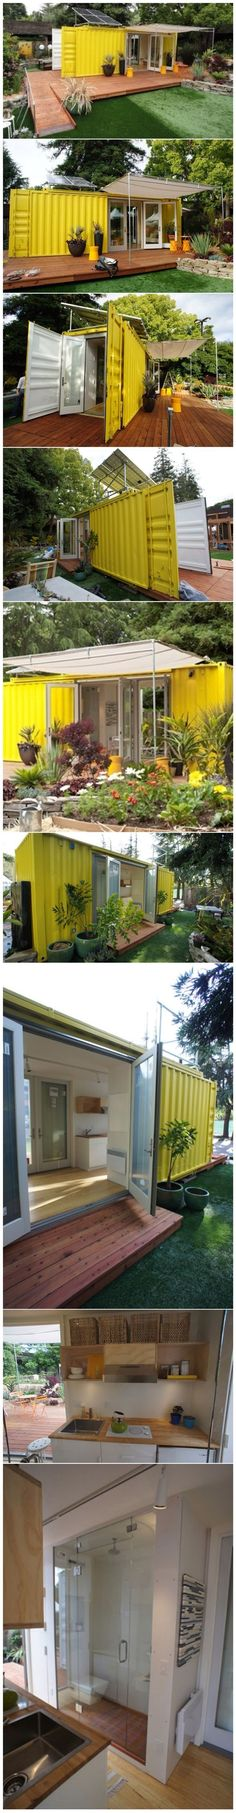 "via www.cargotecture.com This little shipping container house called ""The Nomad"" was designed for Sunset Magazine by Seattle-Based HyBrid Architecture. The home's shell is a used 24 foot shipping container that provides 192 sq. ft. of interior living space and can sleep four people. The house has a galley kitchen, a bathroom and several exterior openings.  ~ Great pin! For Oahu architectural design visit http://ownerbuiltdesign.com"